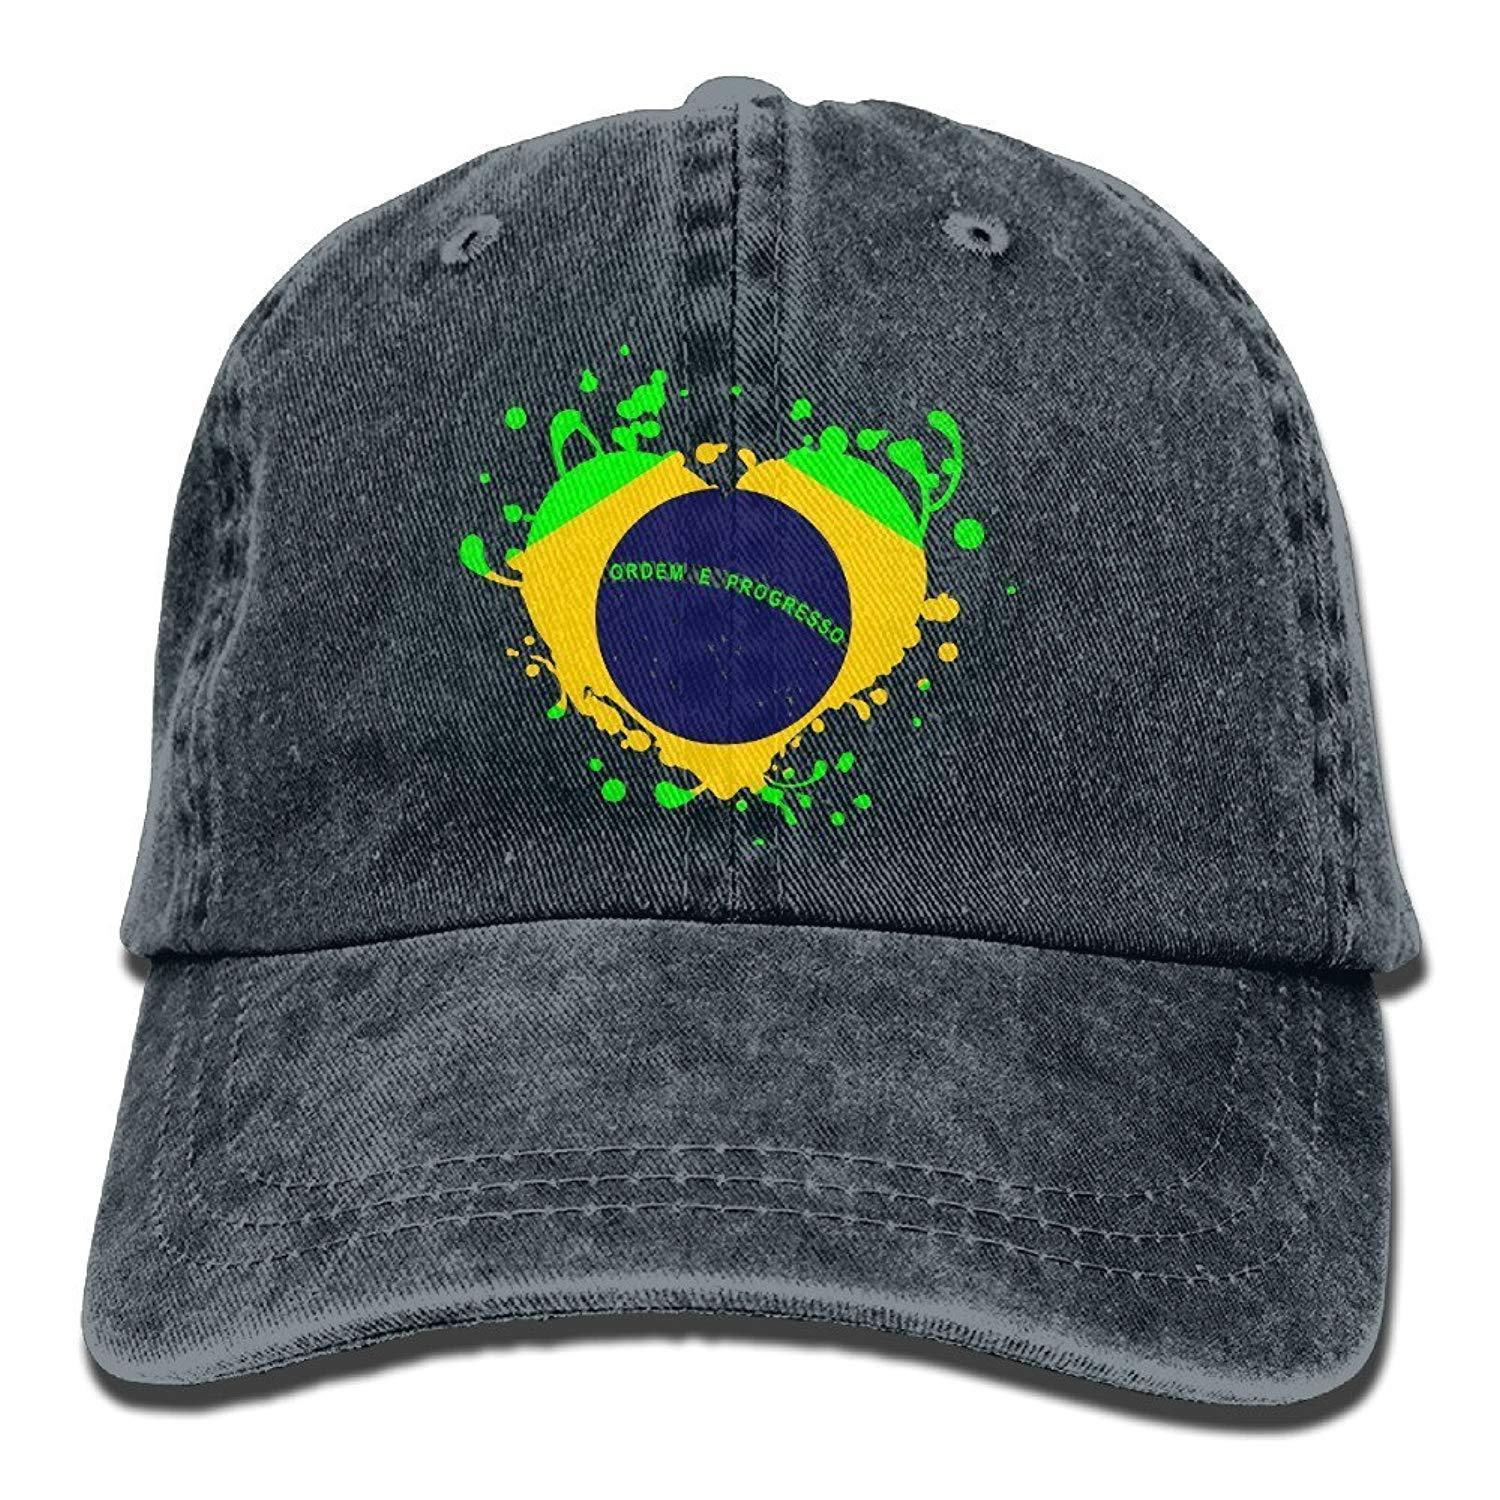 Amazon.com   Paul Garza Football Game Denim Baseball Caps Hat Adjustable  Cotton Sport Strap Cap for Men Women   Sports   Outdoors a2dfe549512